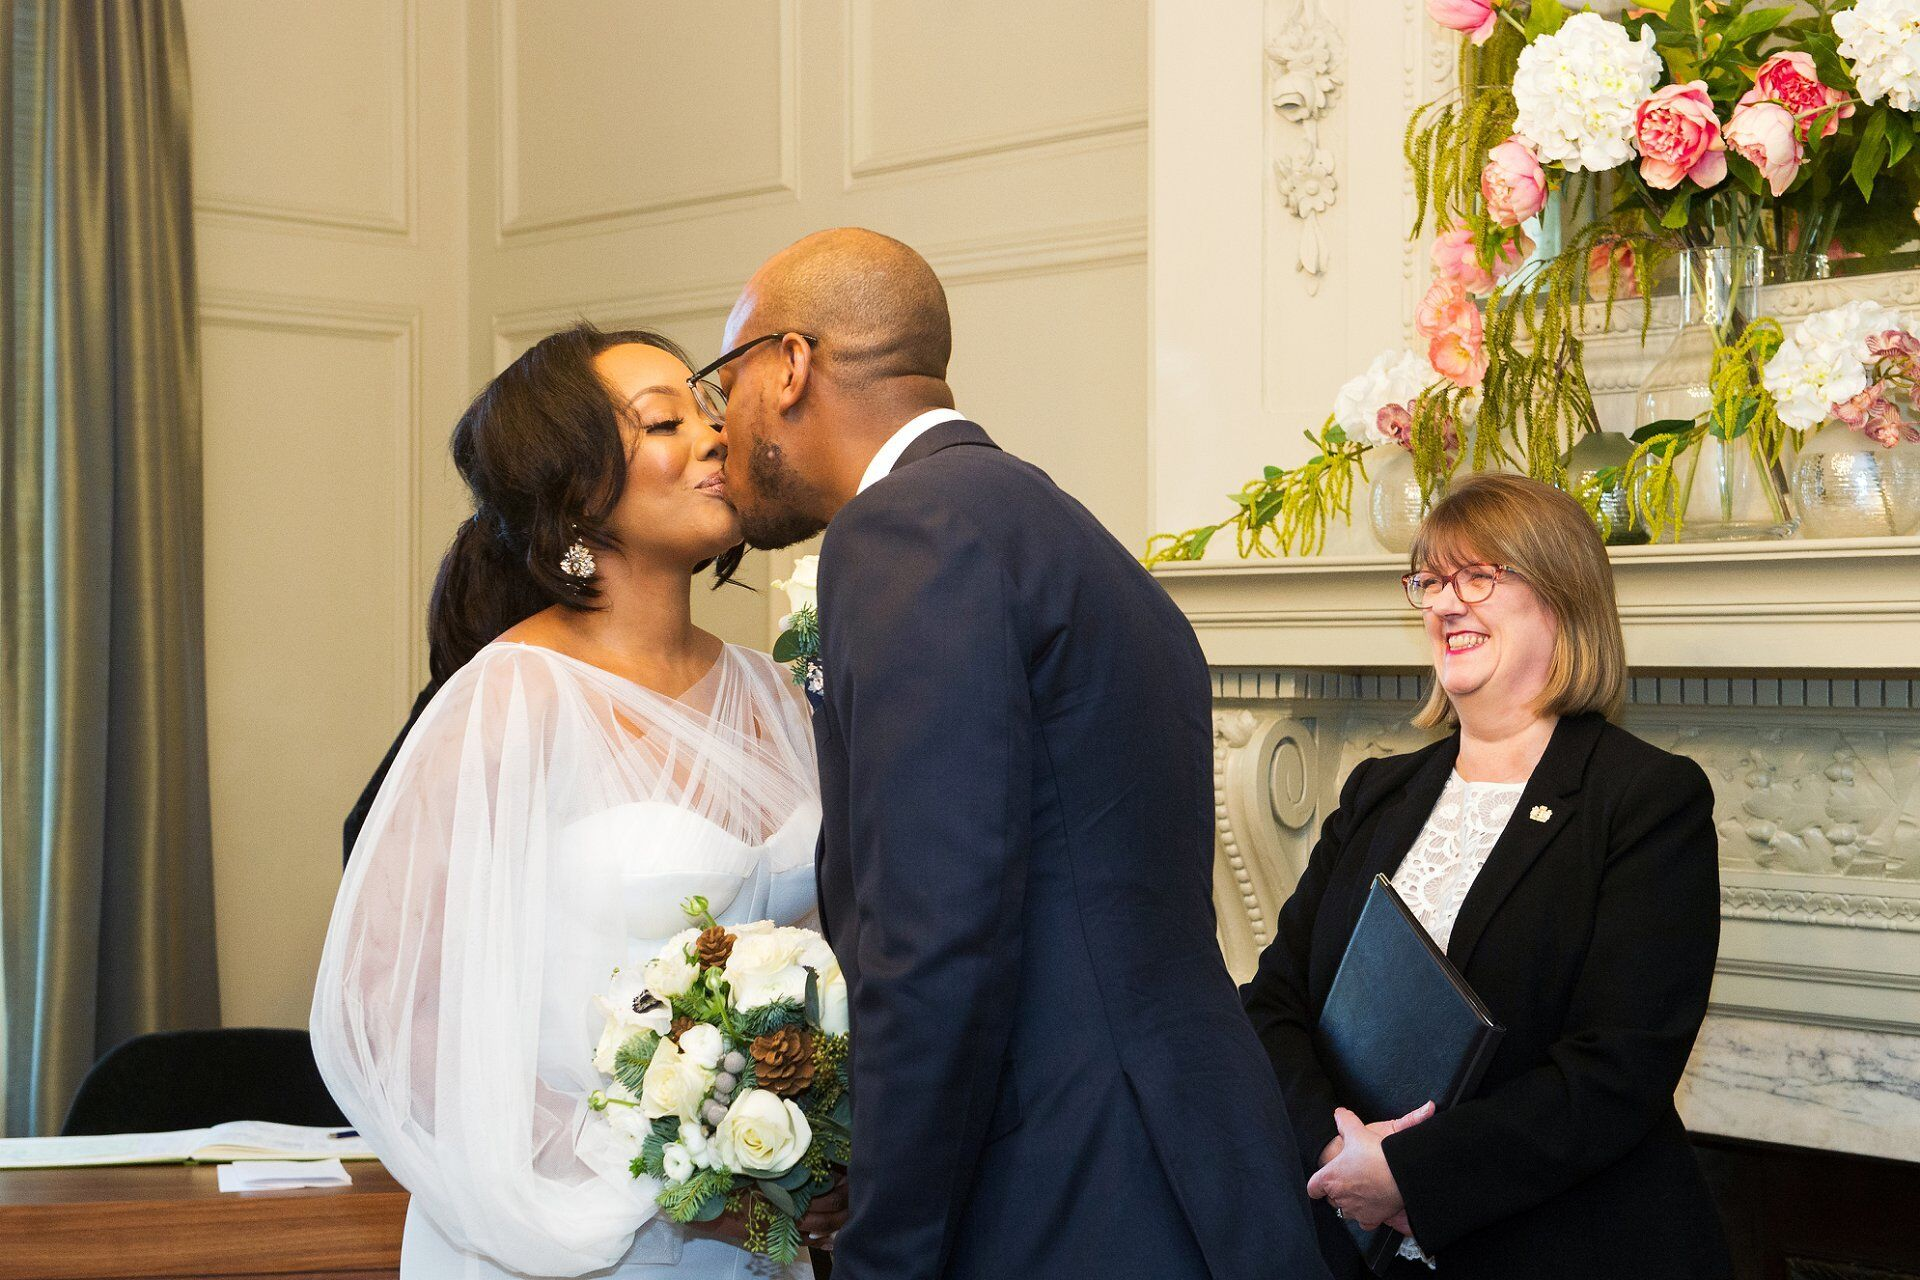 bride and groom kiss to seal the deal with registrar looking on and smiling